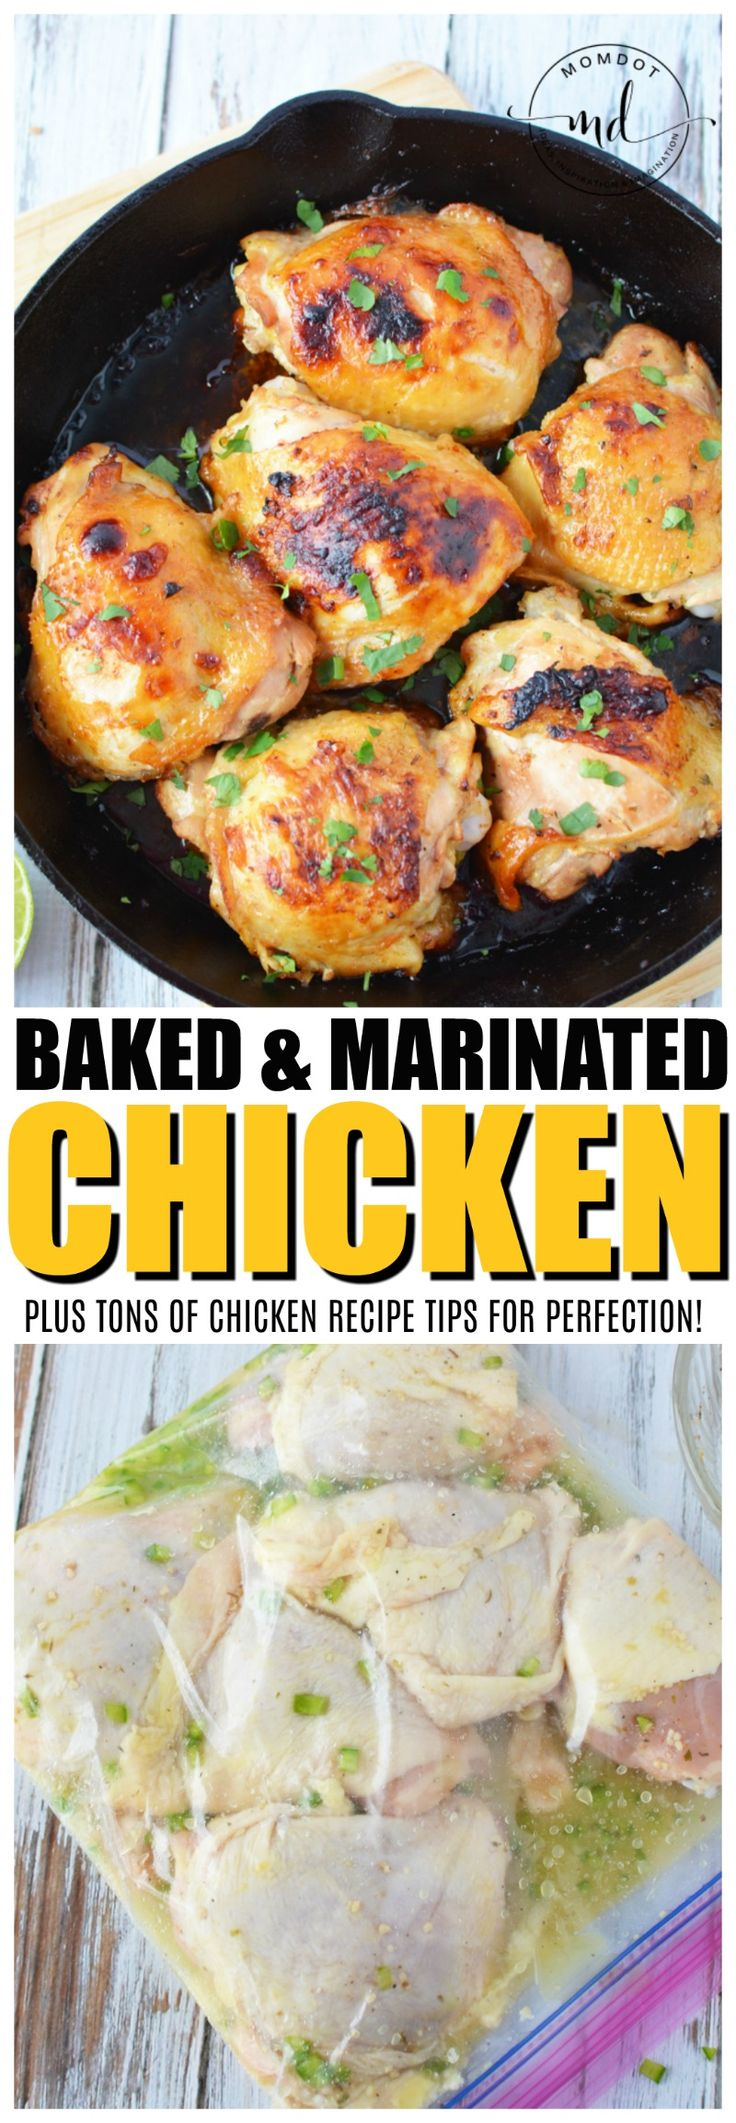 Baked Chicken Marinated perfectly for a crispy outside and moist inside, get recipe plus tons of chicken cooking tips!